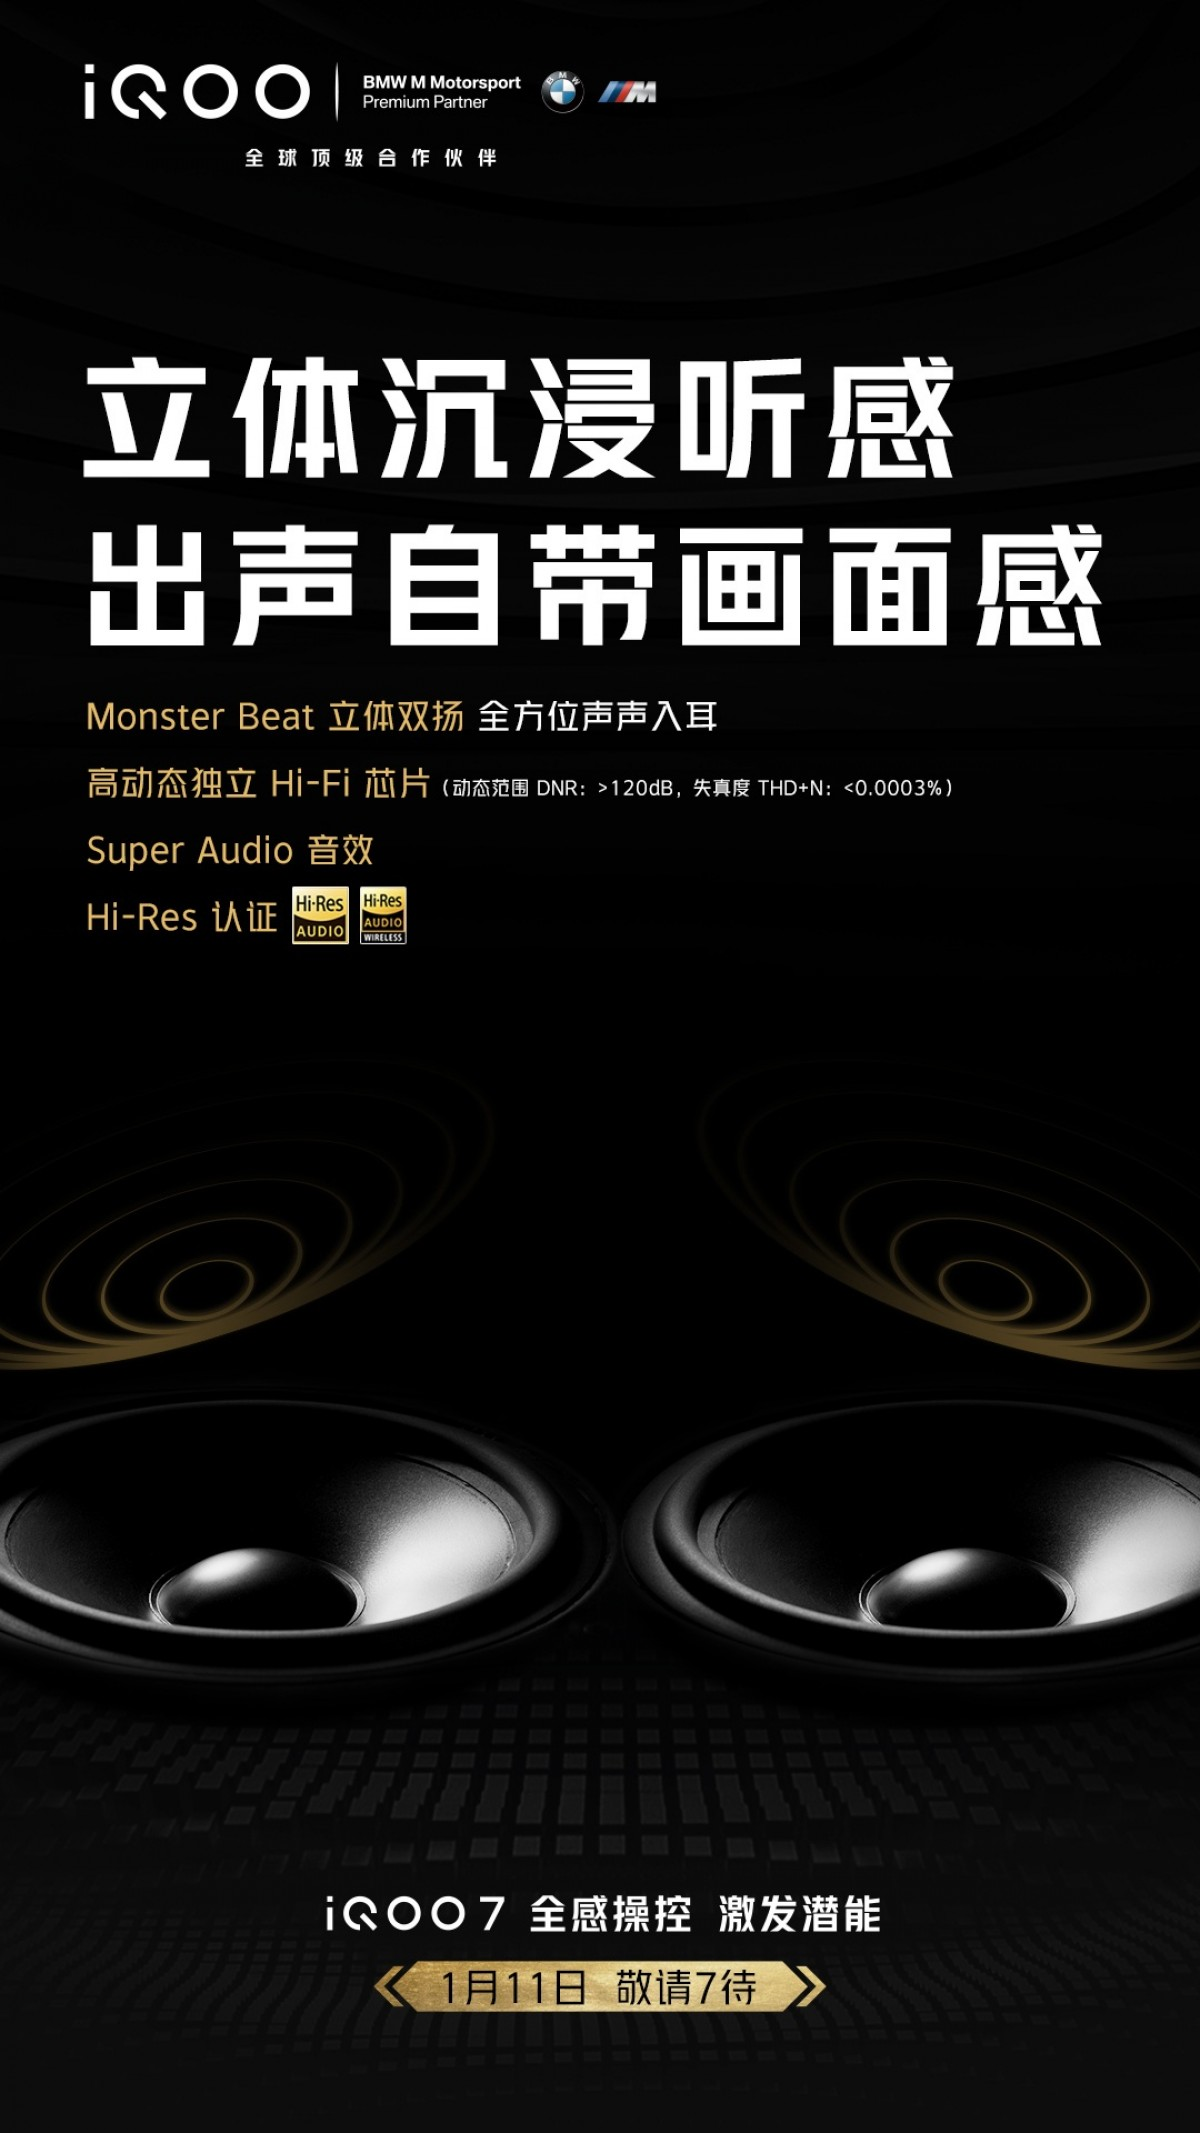 Six vivo iQOO phones start receiving Origin OS beta, iQOO 7 to have Monster Beat speakers